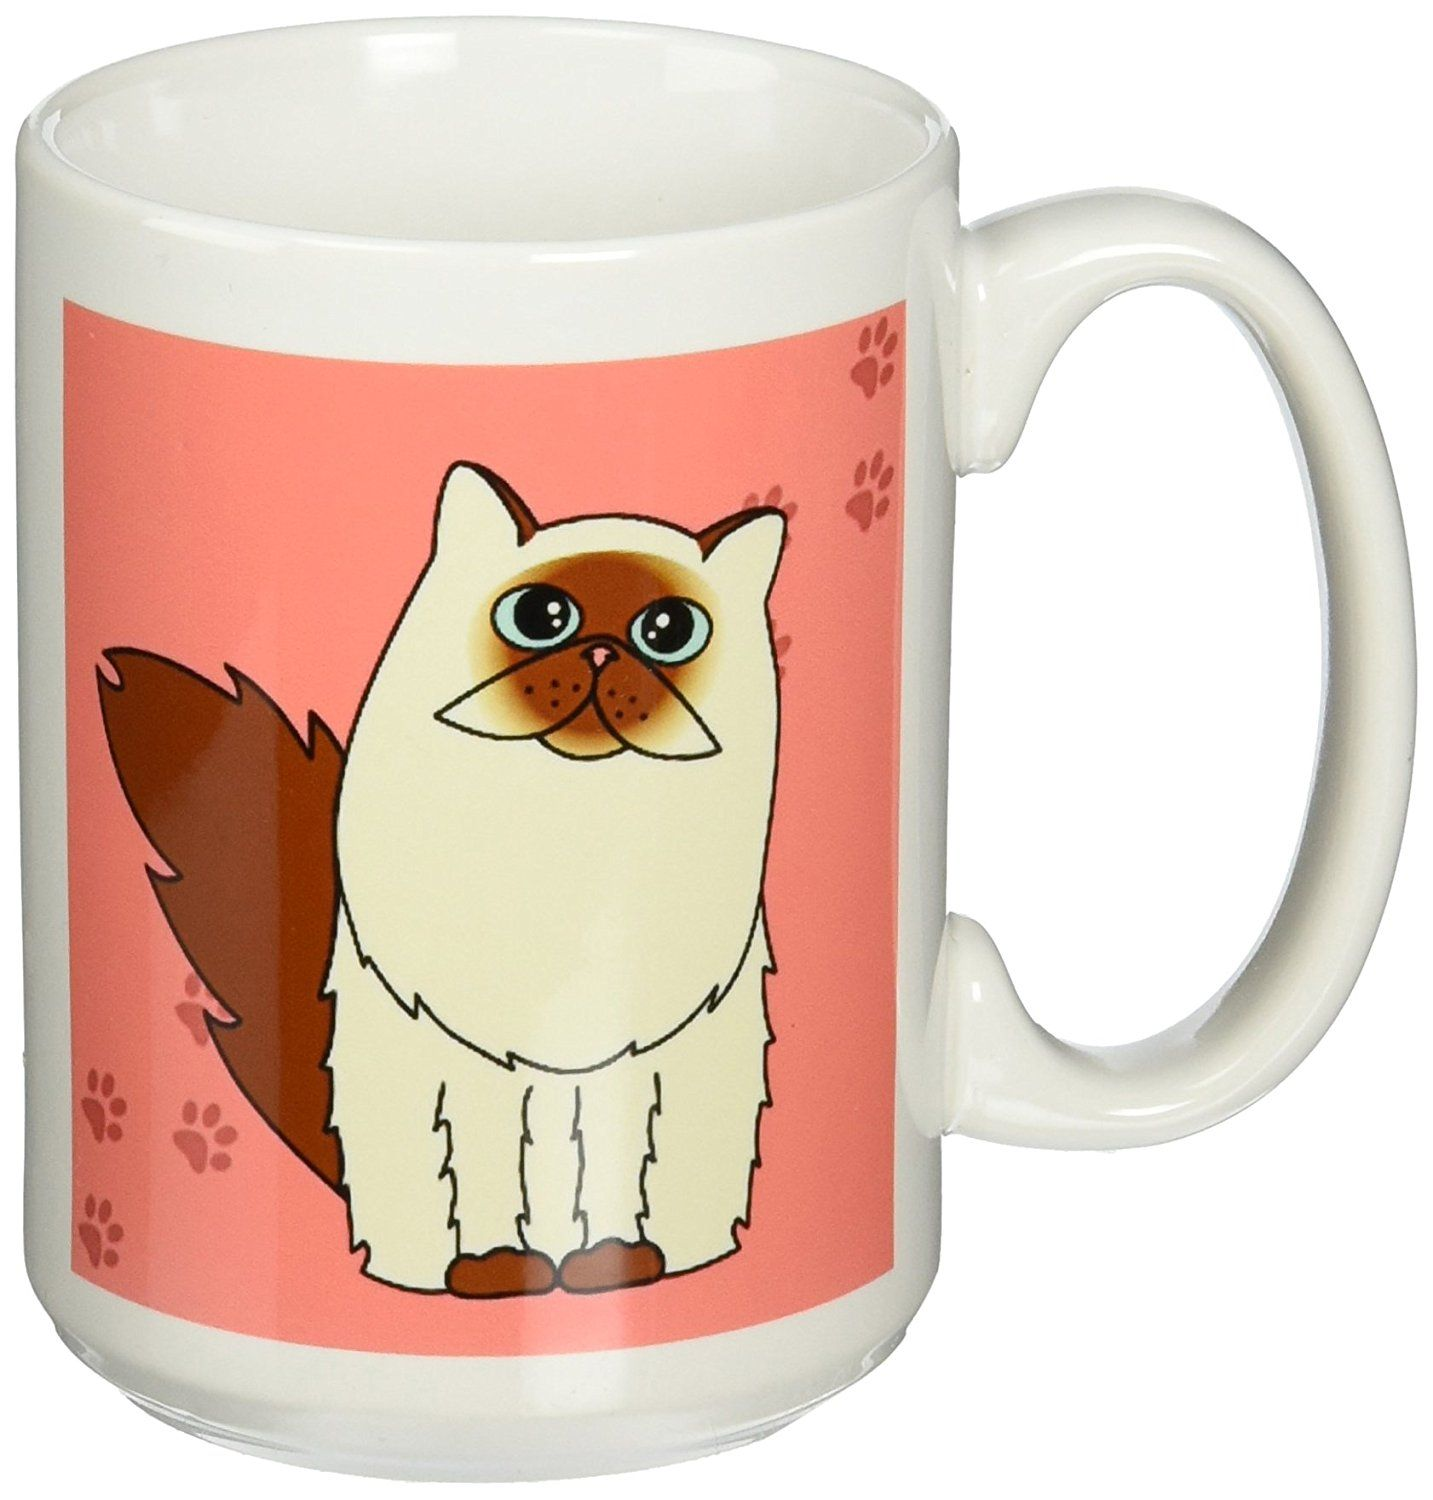 3dRose Himalayan Long Haired/Persian Cat Paw Print Mug, 15